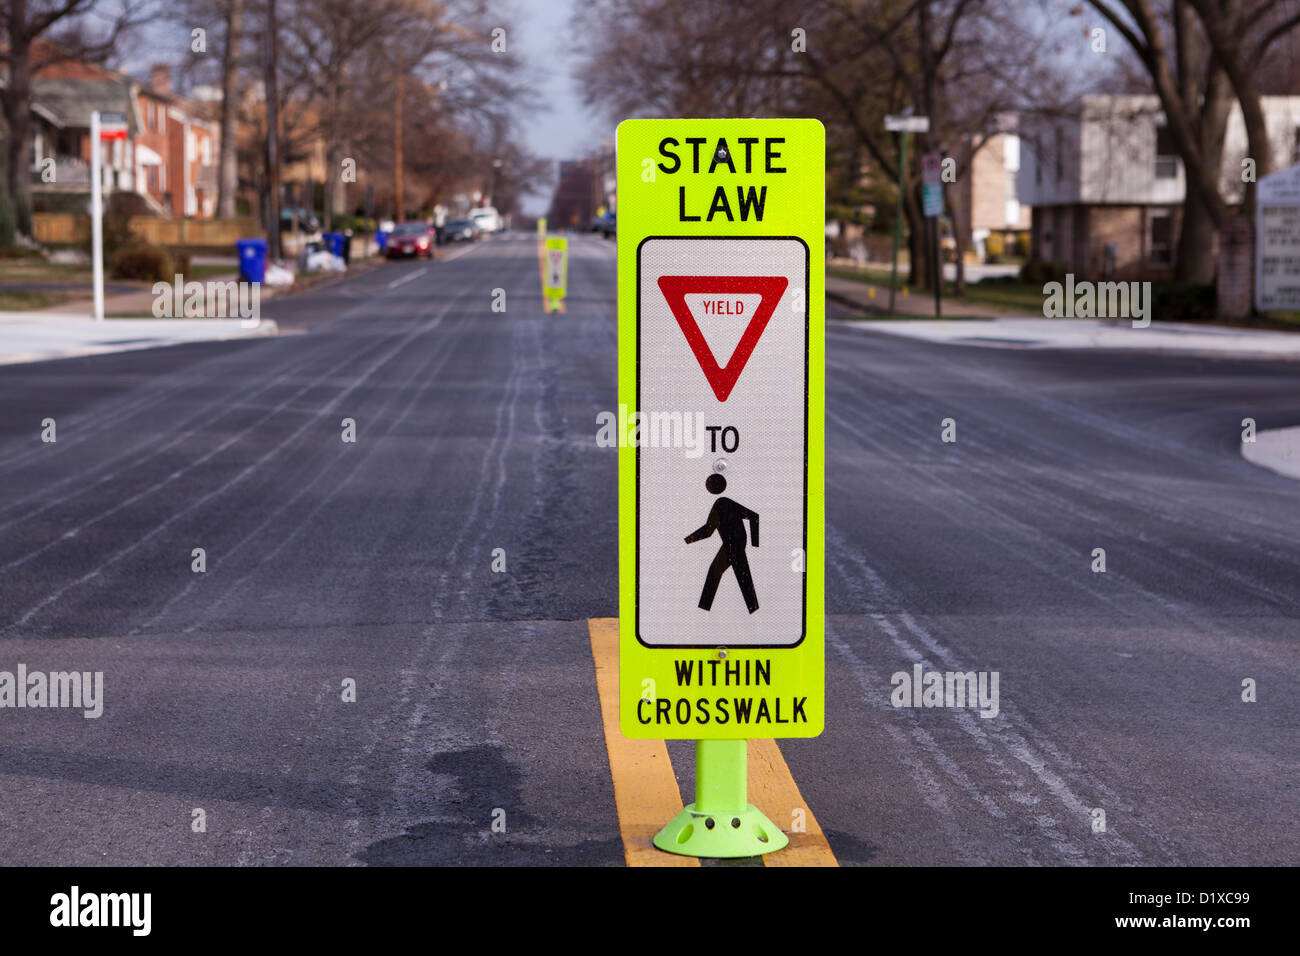 Yield to Pedestrian sign - Stock Image